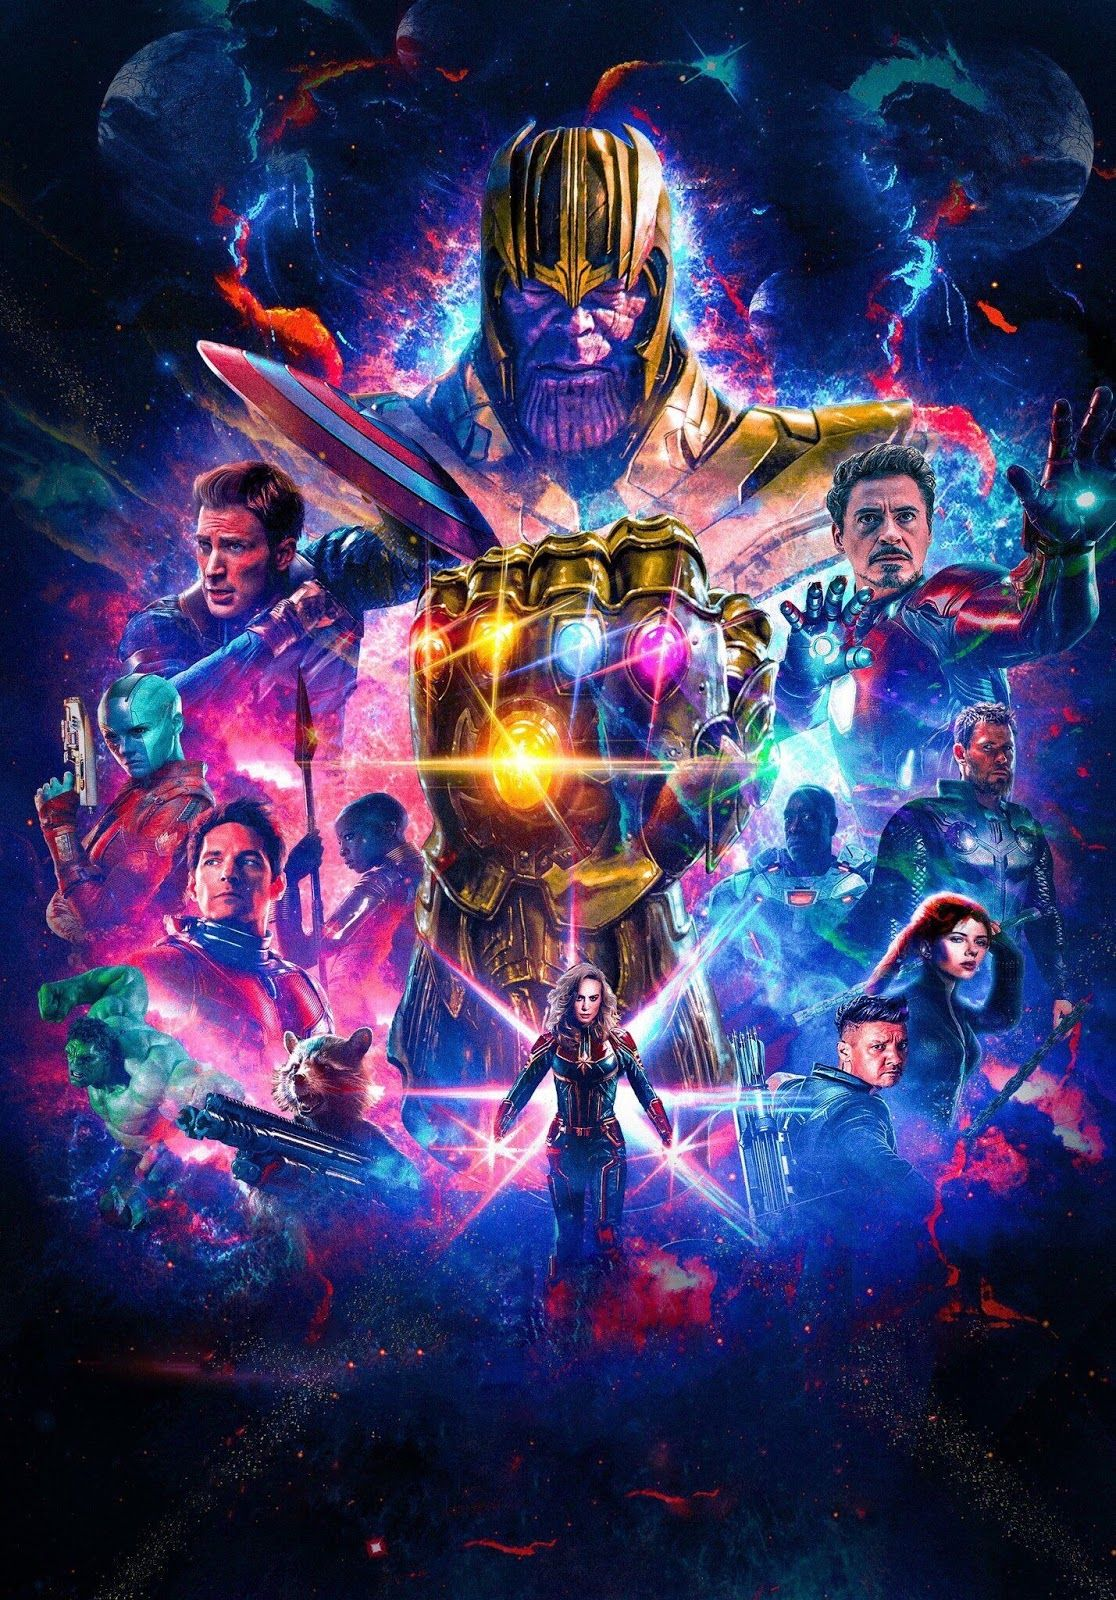 Iron Man Animated Wallpaper Avengers 4 End Game And Infinity War Hd Wallpapers